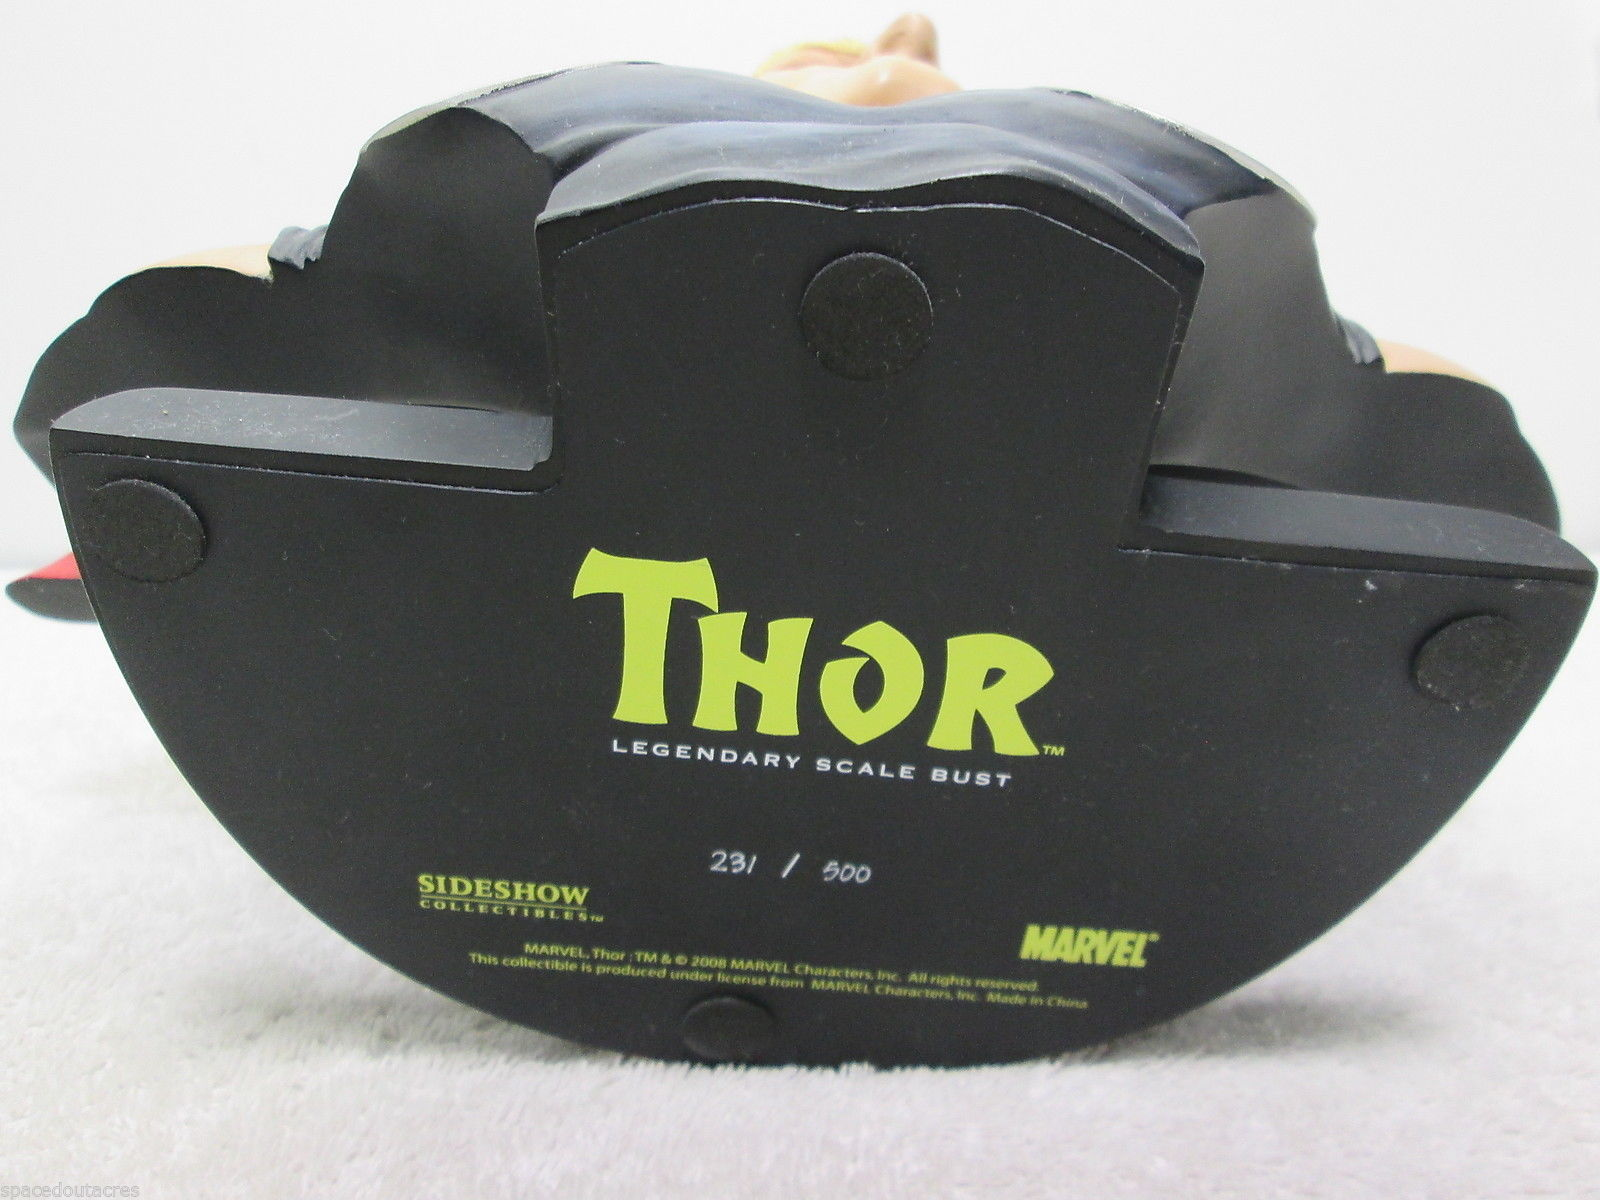 Marvel Thor Legendary Scale Bust 13in. Tall 231/500 - Sideshow 2008